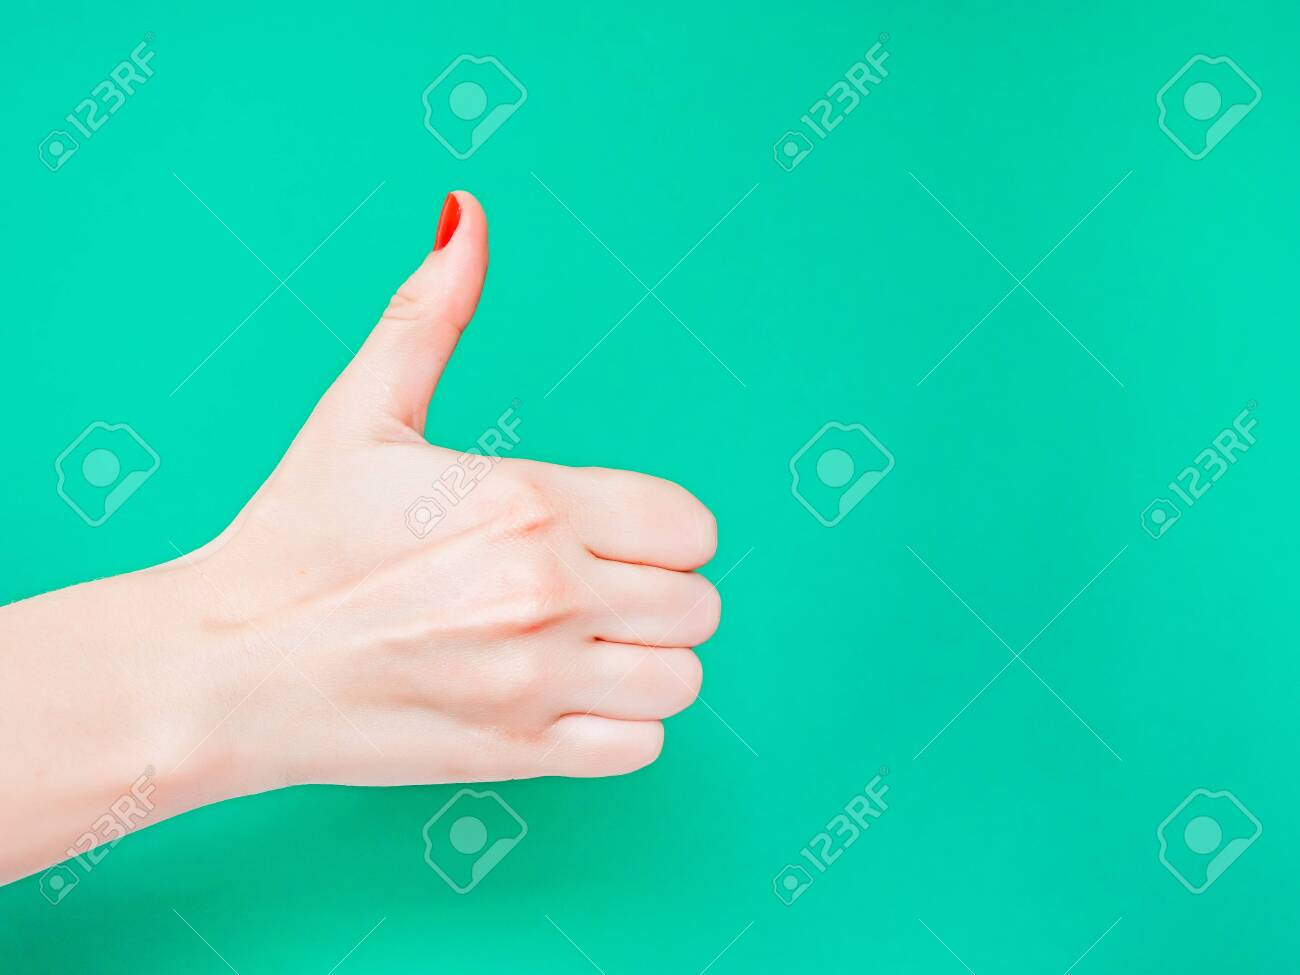 The Thumbs Up Sign. Like Hand Sign. Used when you want to demonstrate that you like something or that you approve of something, The ol thumbs up hand sign. Female hand with red manicure on fingernails holding hand in gesture of likeness giving thumb up on isolated turquoise green color background - 121638490